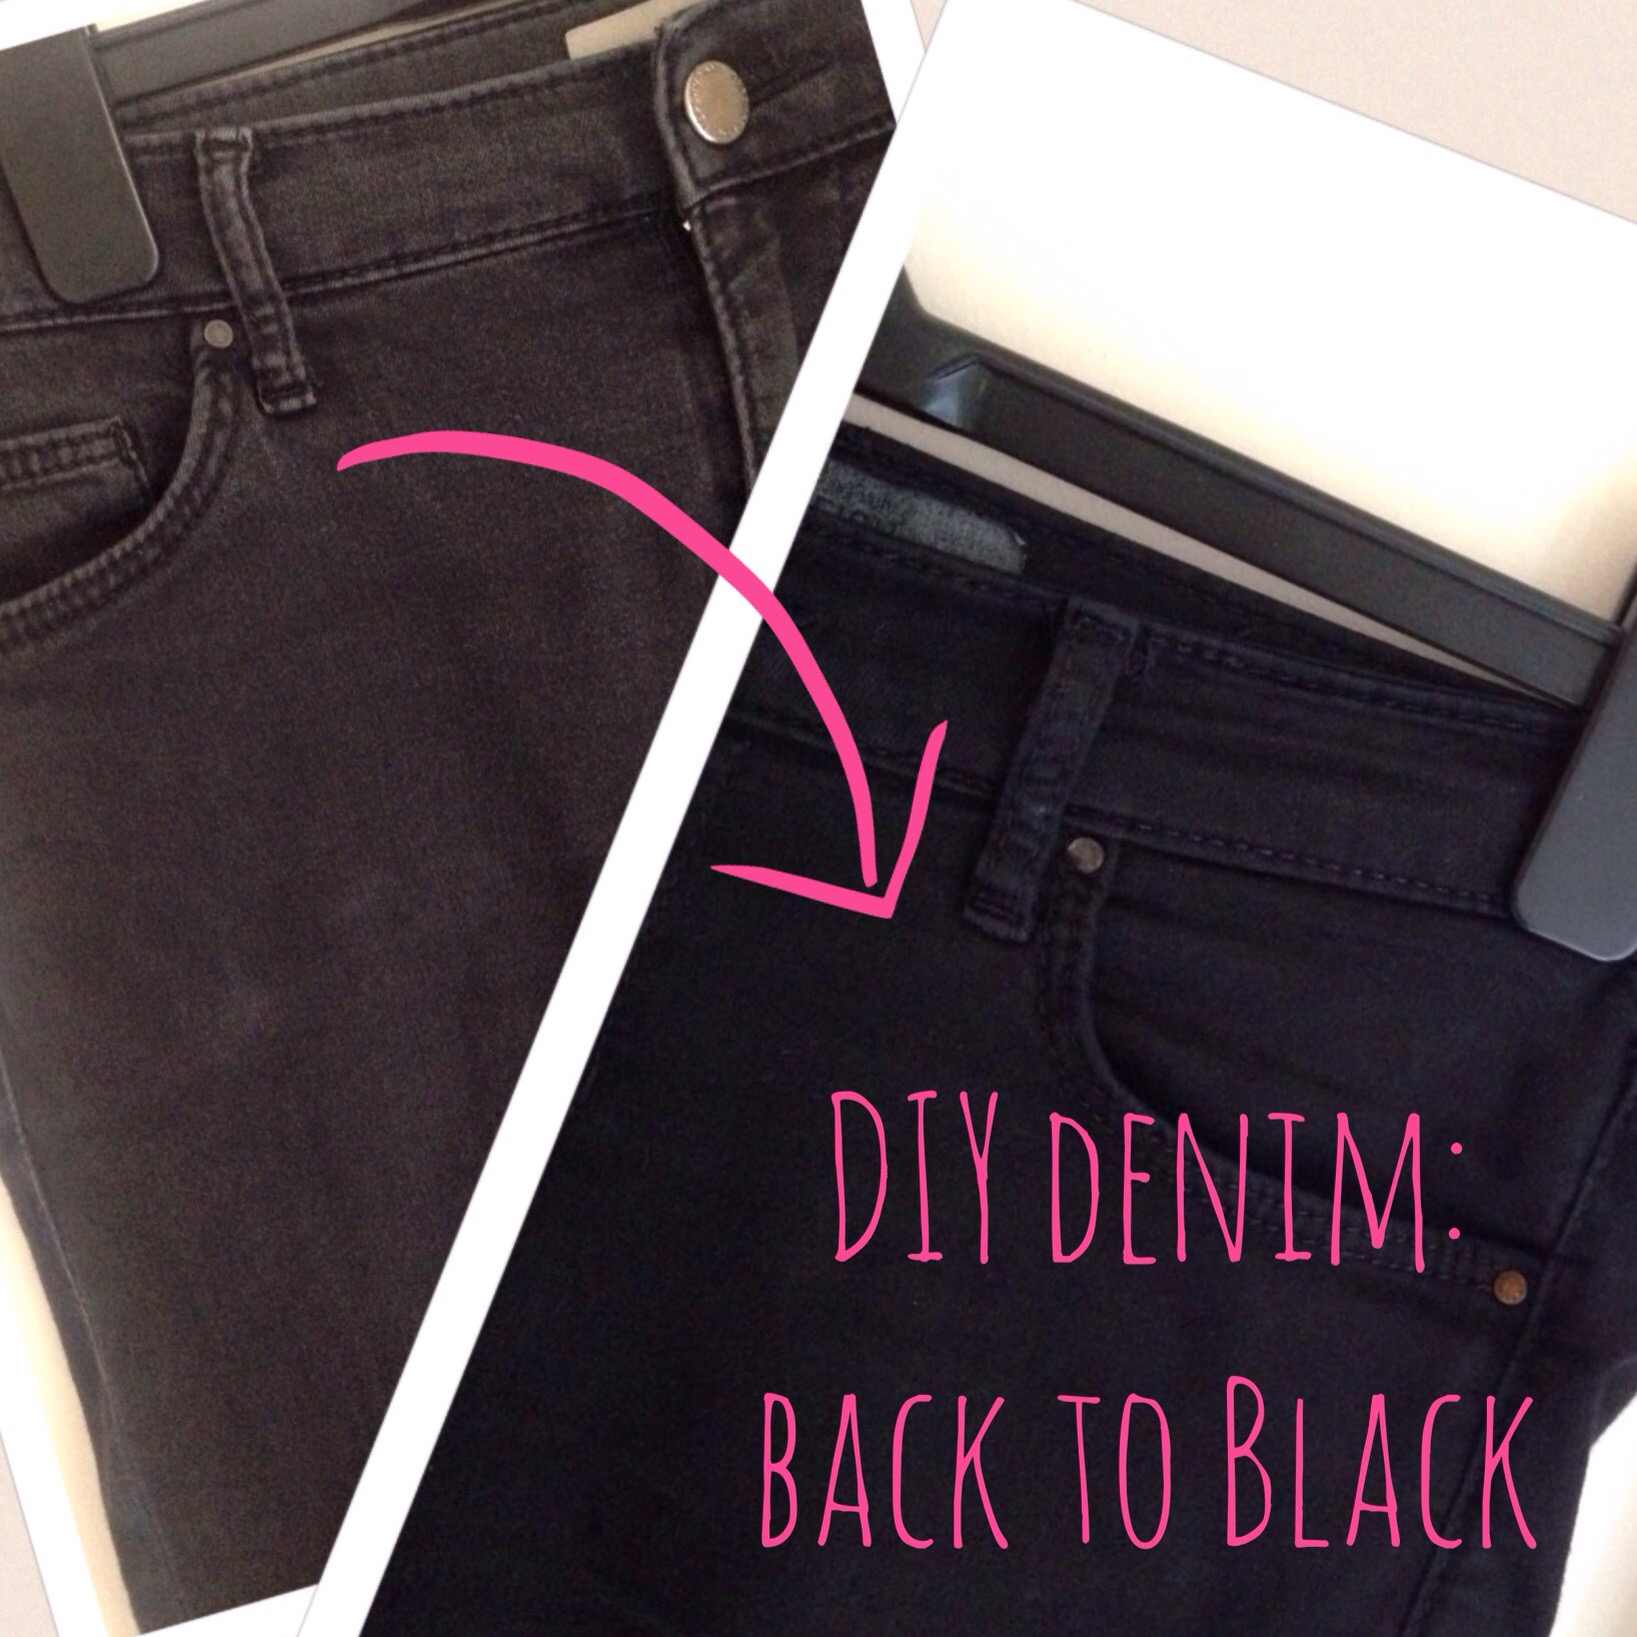 diy denim faded machine dye